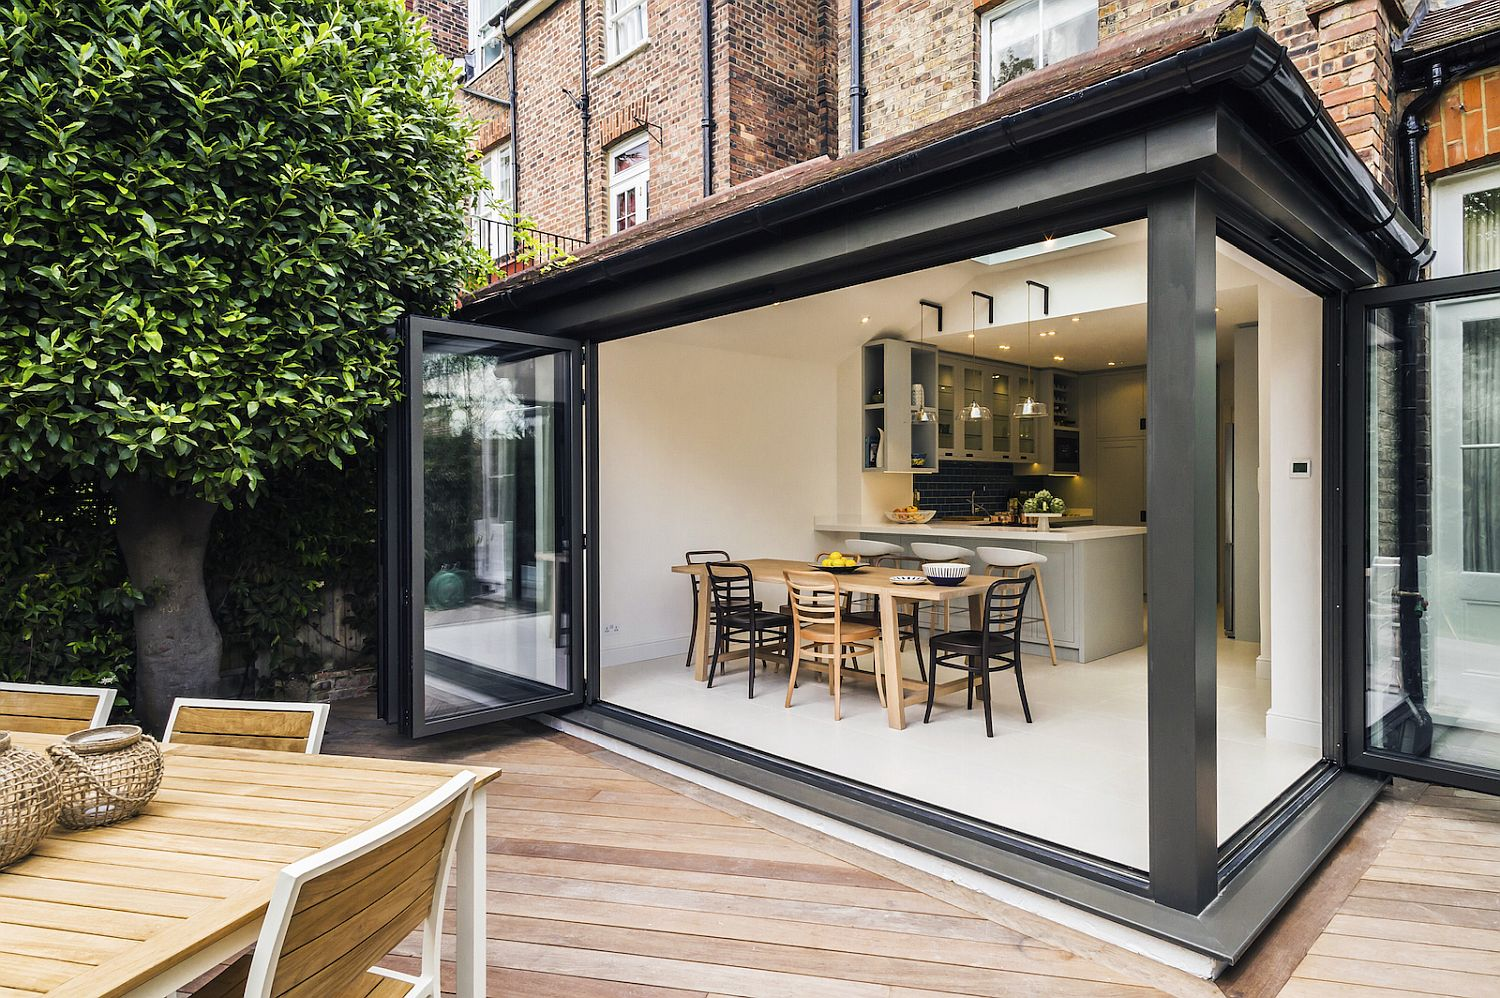 Kitchen-and-dining-room-of-the-London-home-extension